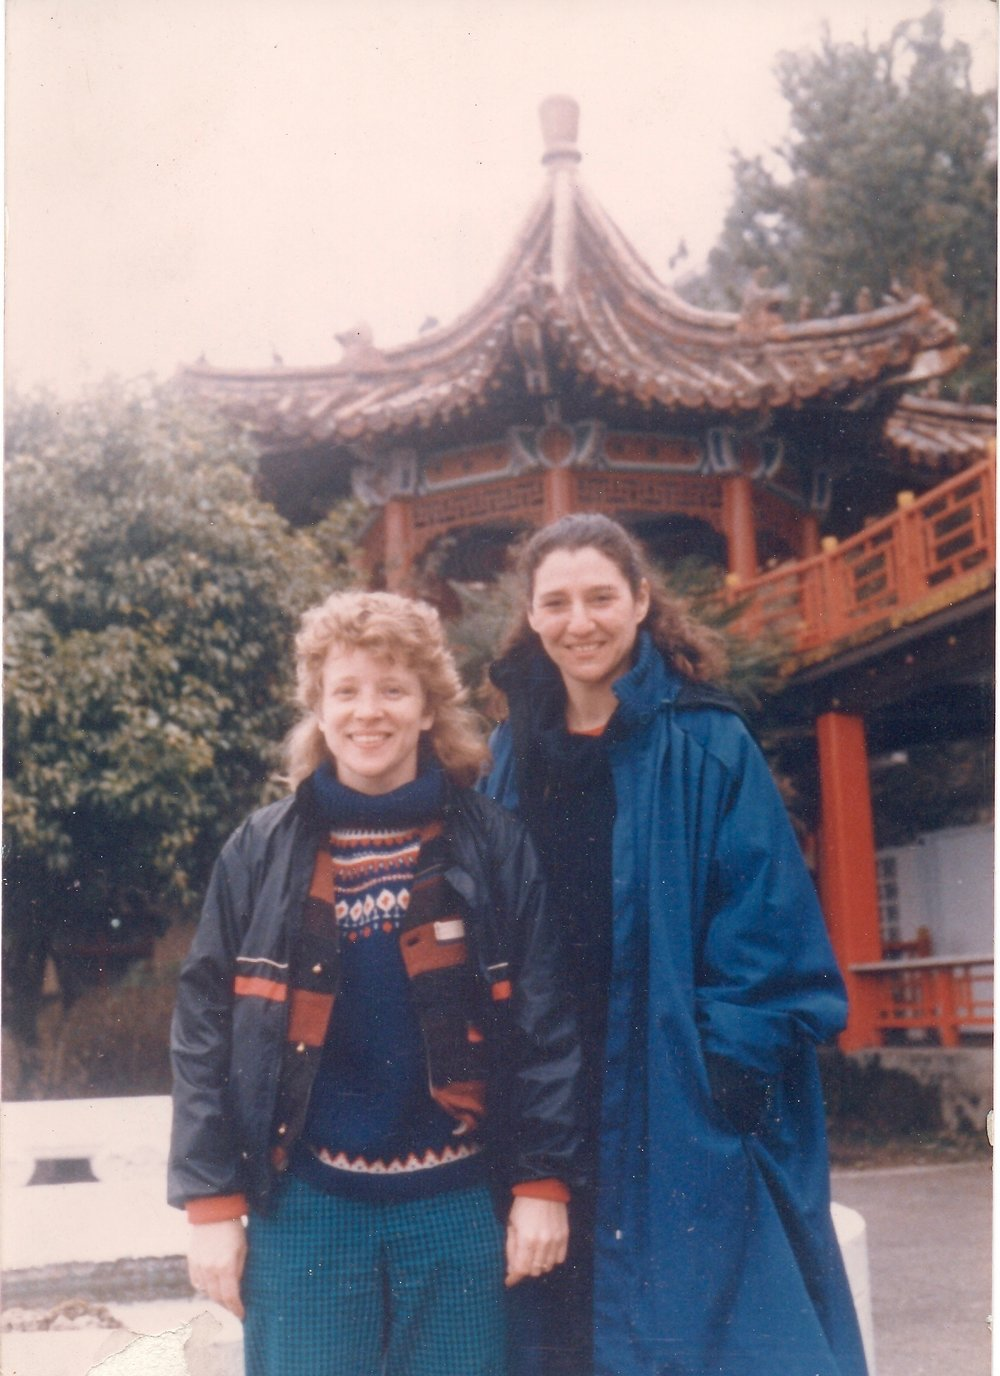 Mary Christianson and Susan Rabinowitz, founder of the Taoist Arts Center in NYC, celebrate Chinese New Year in Li Shan, Taiwan, 1985.